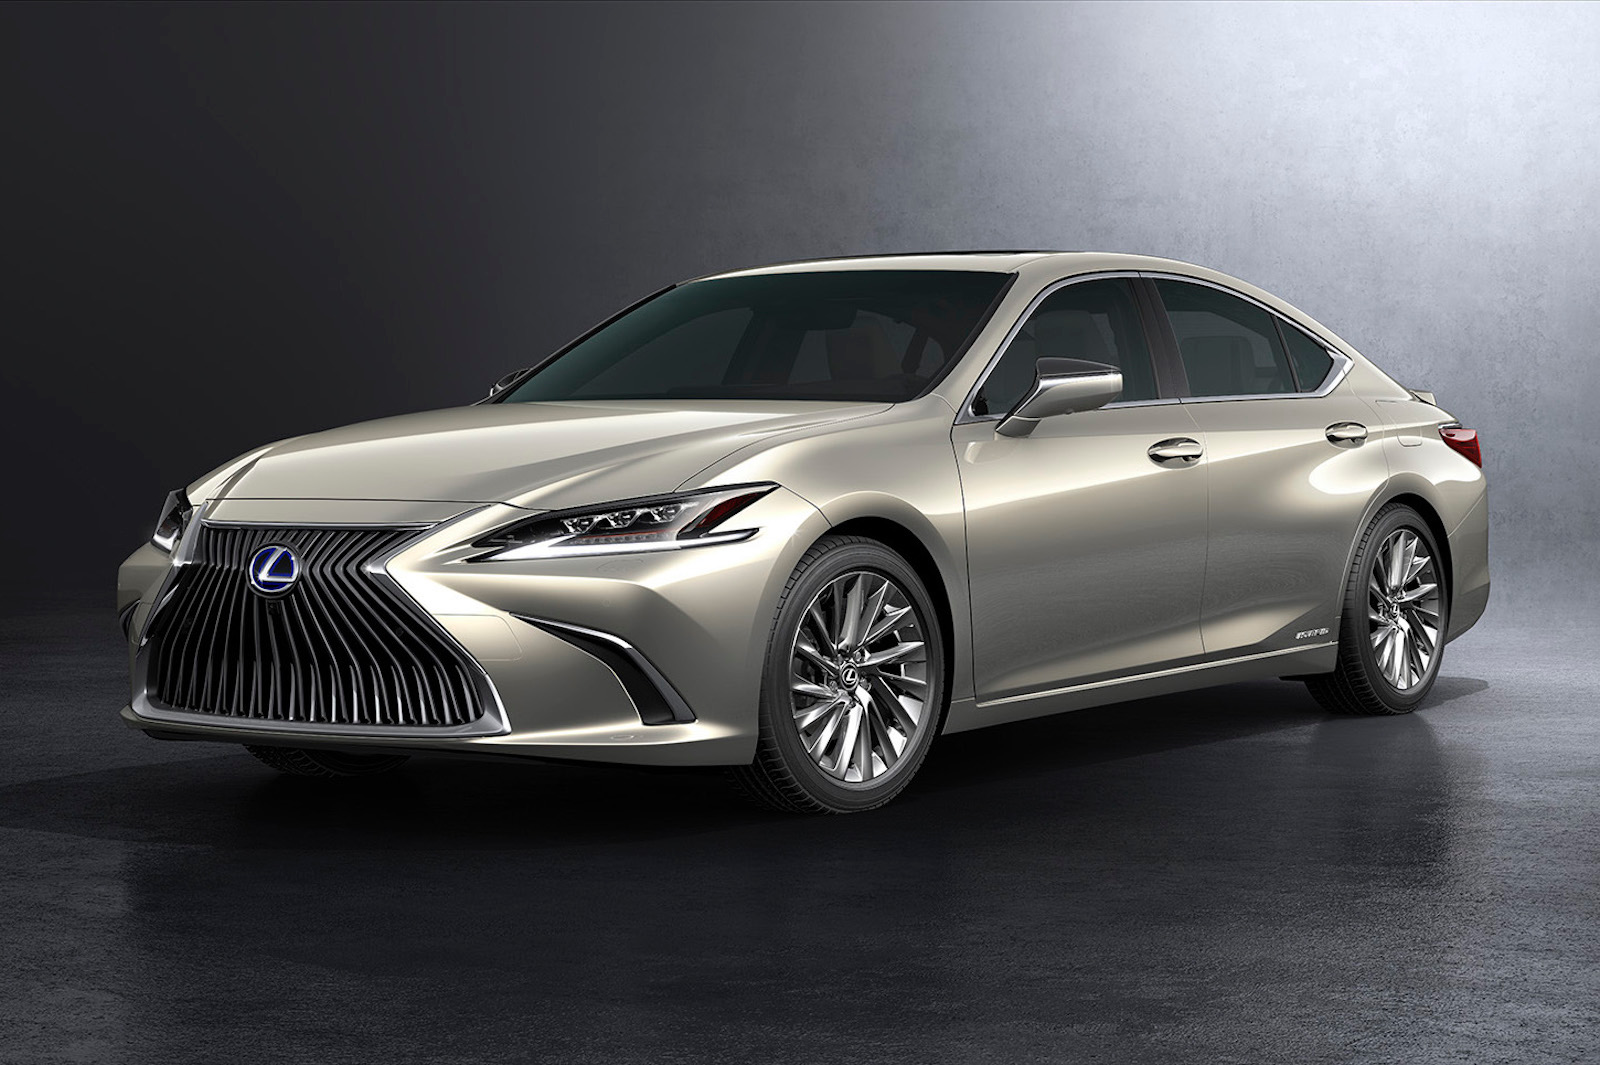 2019 Lexus Es Revealed Hybrid Es 300h Confirmed For